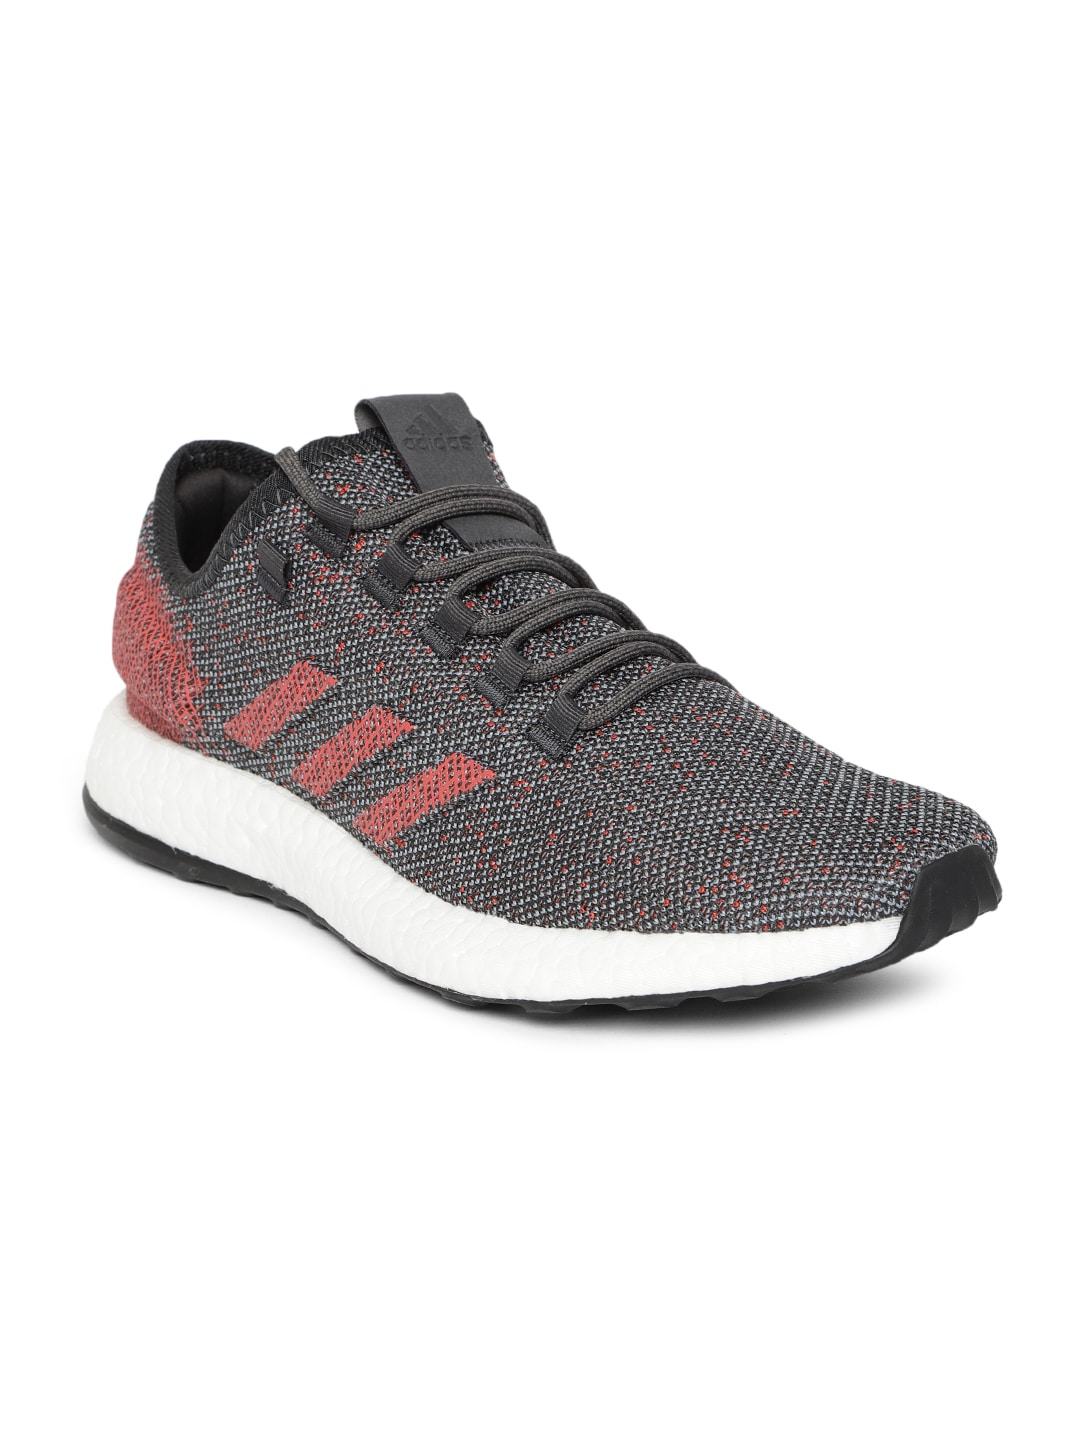 cce3b5114e8b3 Adidas Sports Shoes - Buy Addidas Sports Shoes Online